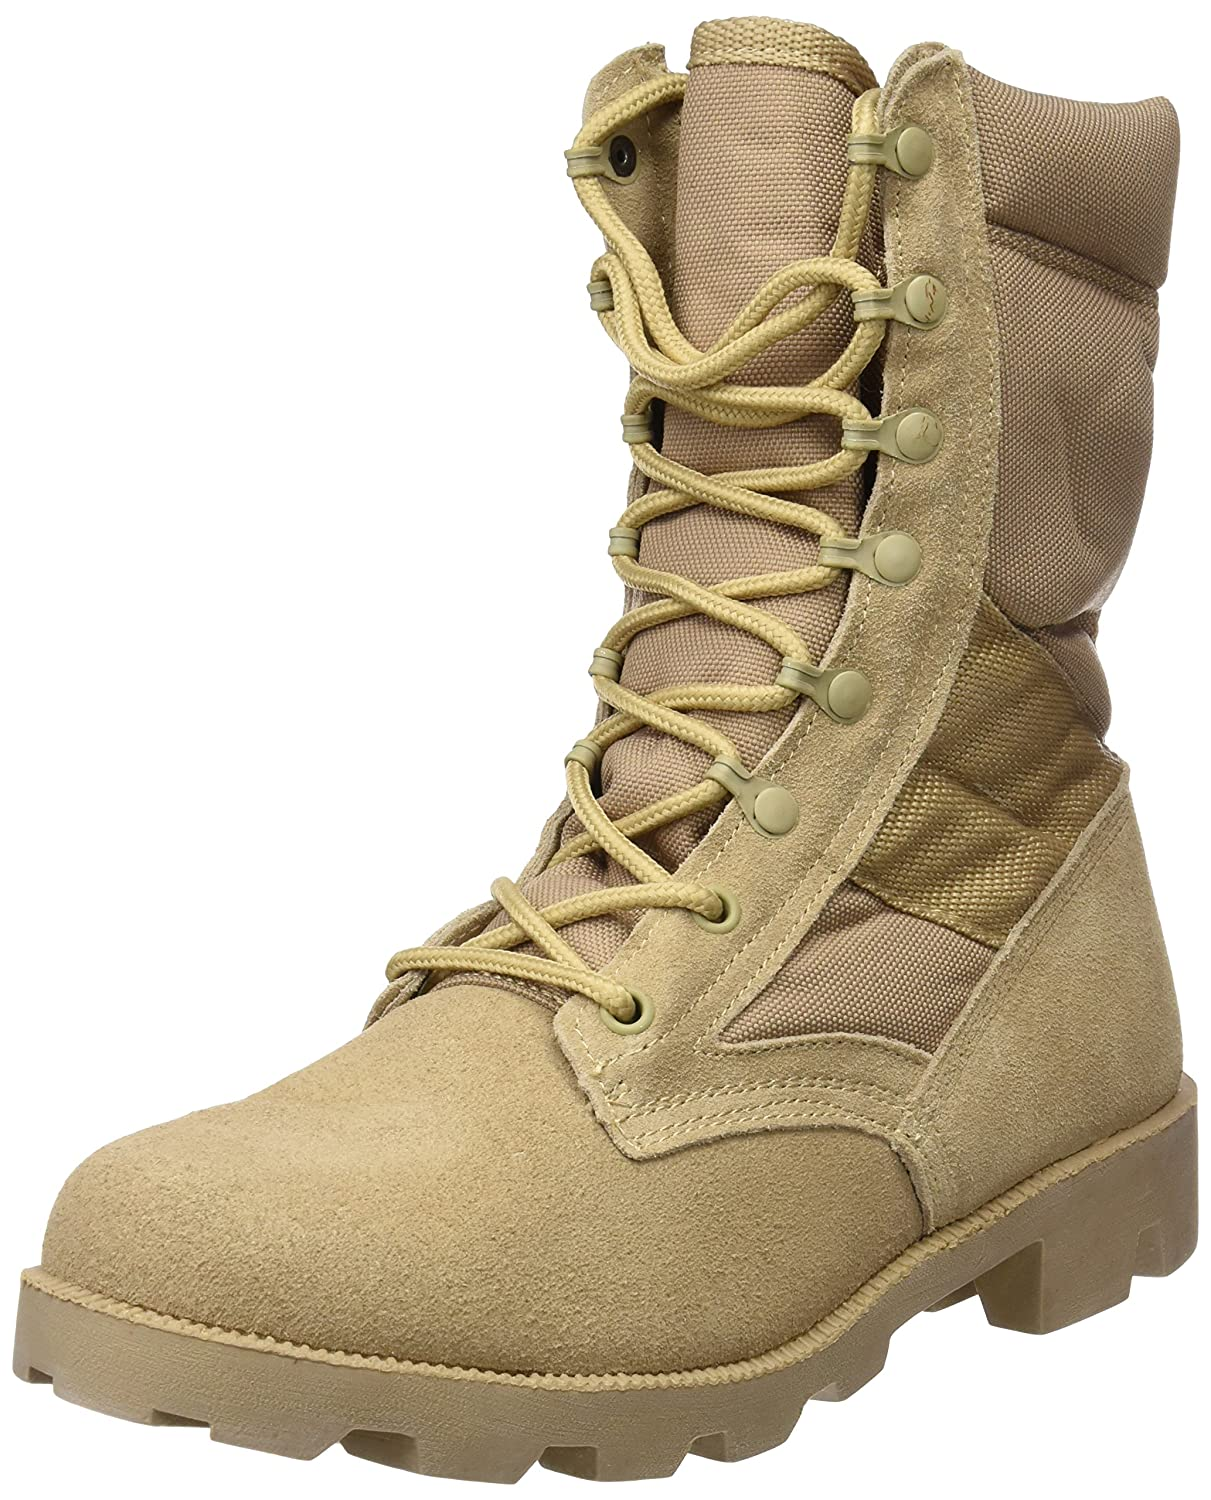 Mil-Tec US Military Desert Boots w/Speed Lace B004OUBJH0 BW9 / EU43 / 28.0cm